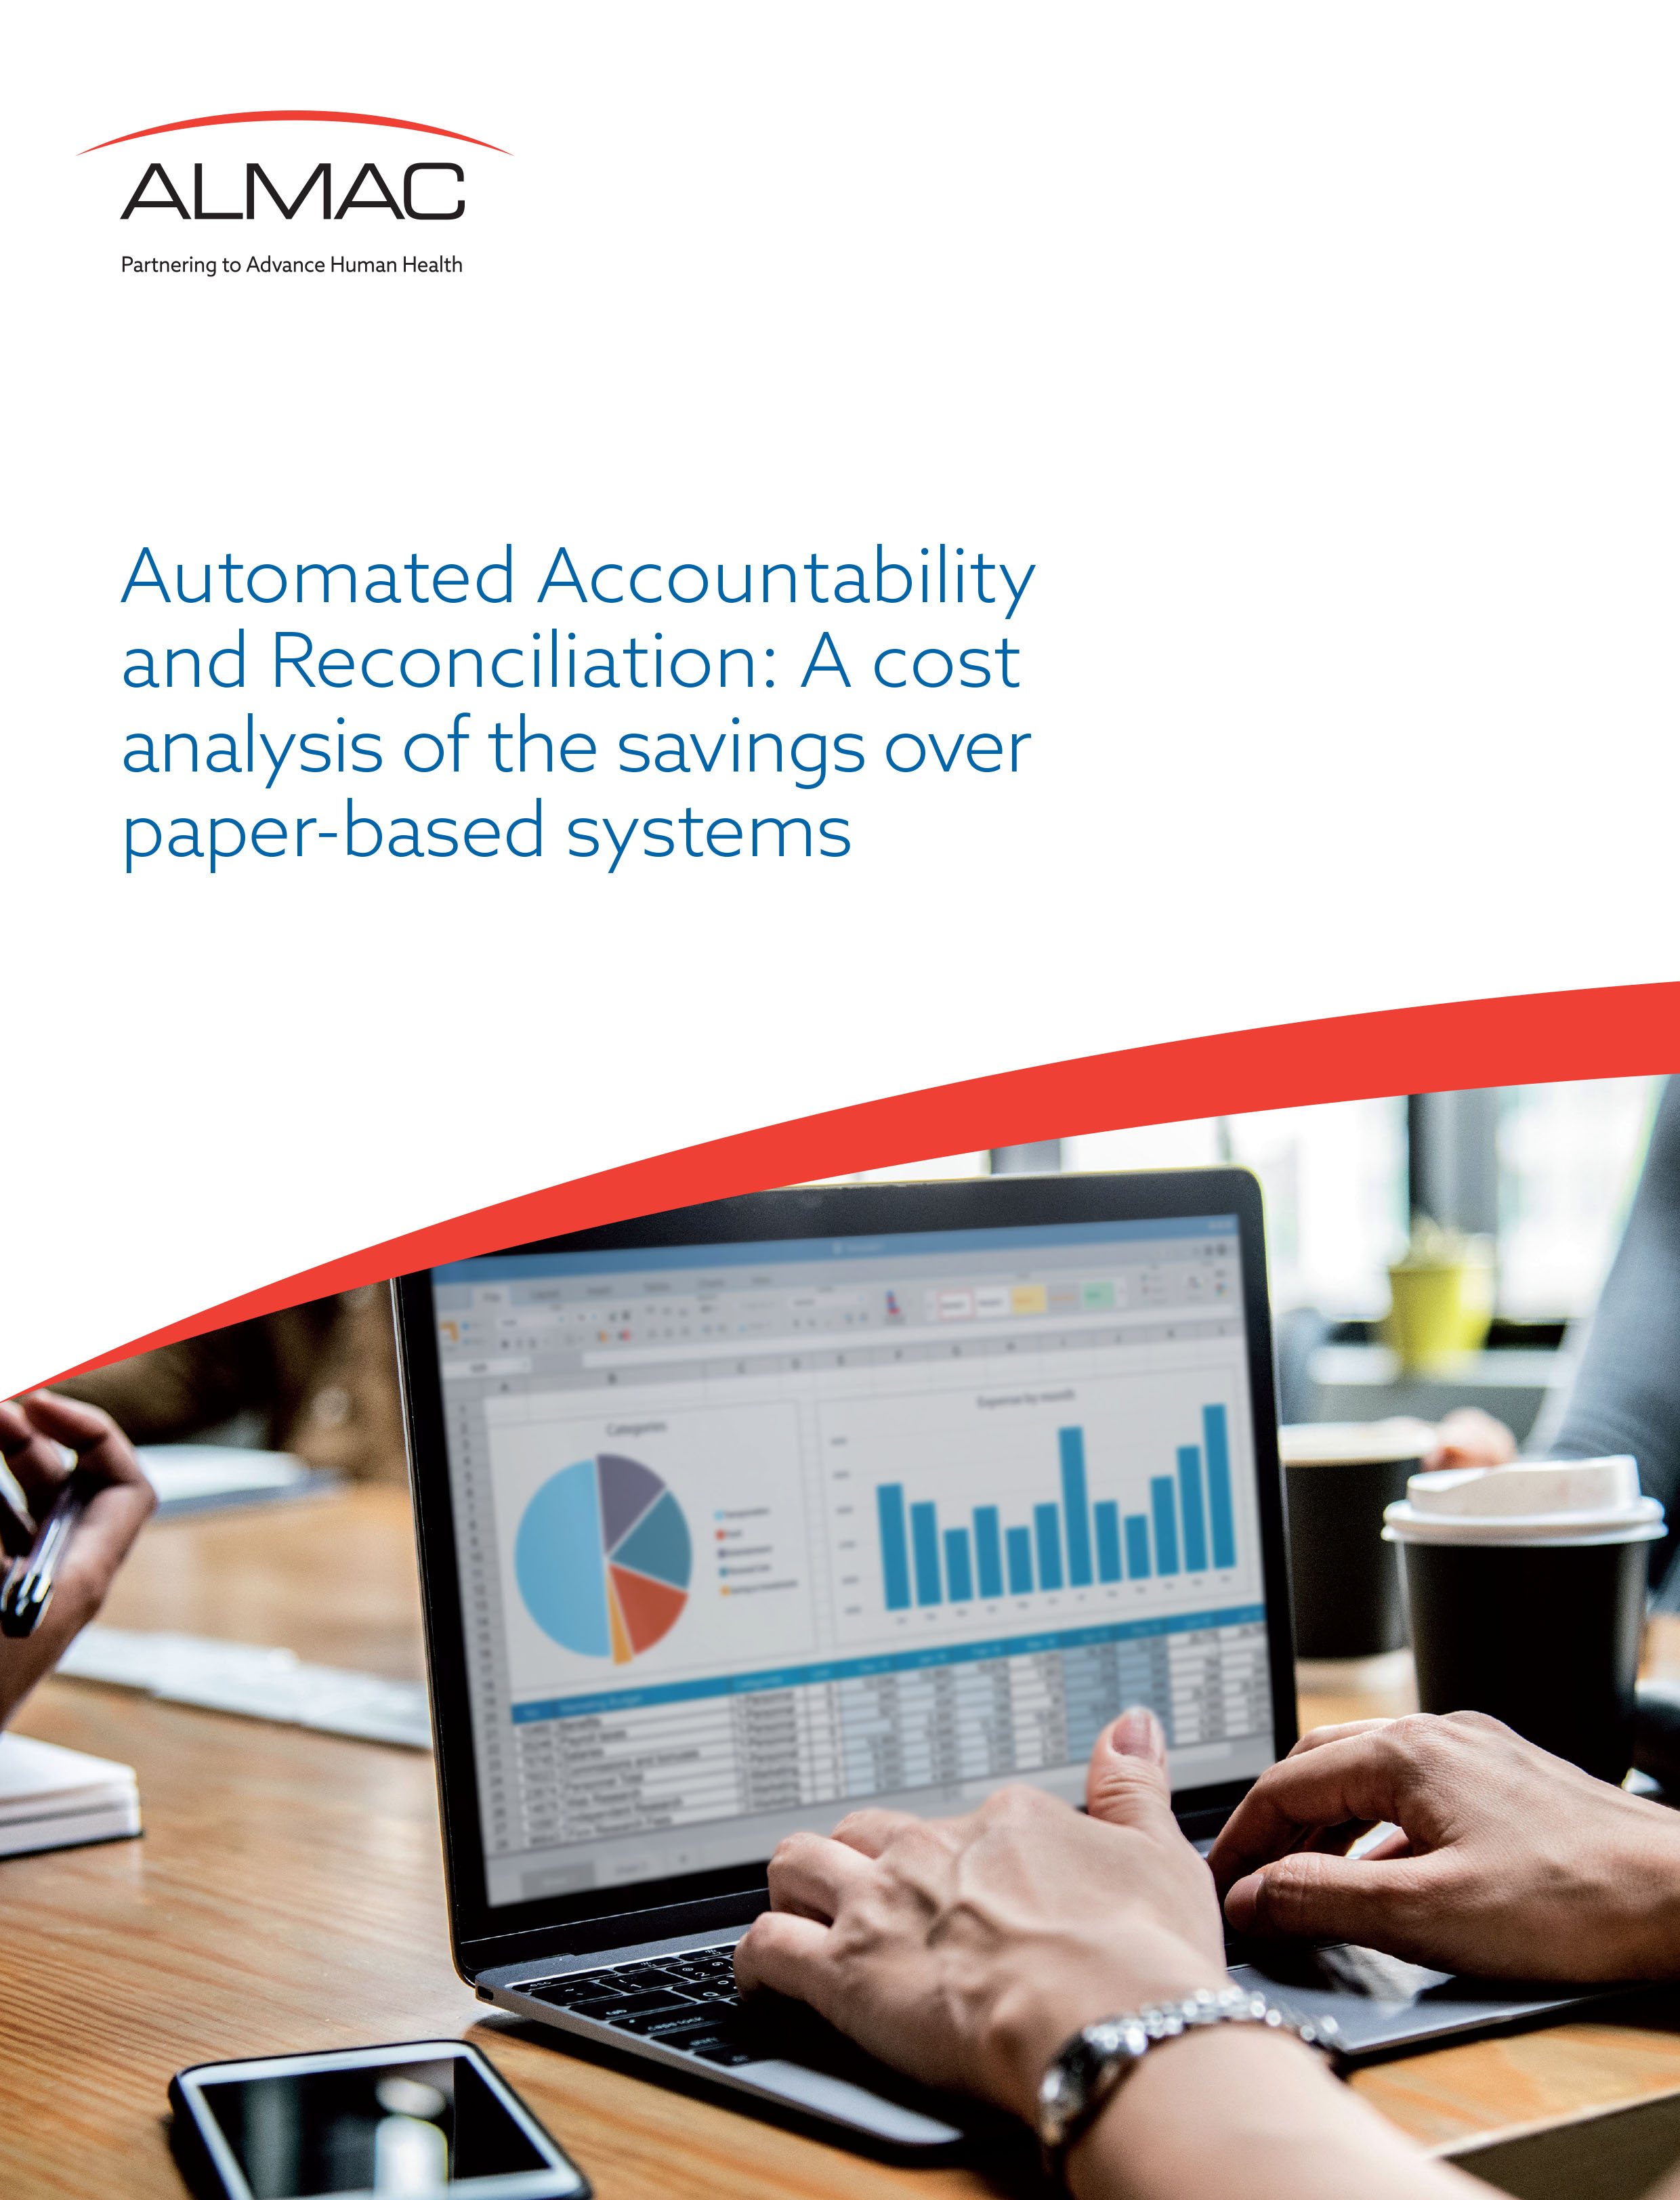 Automated Accountability and Reconciliation